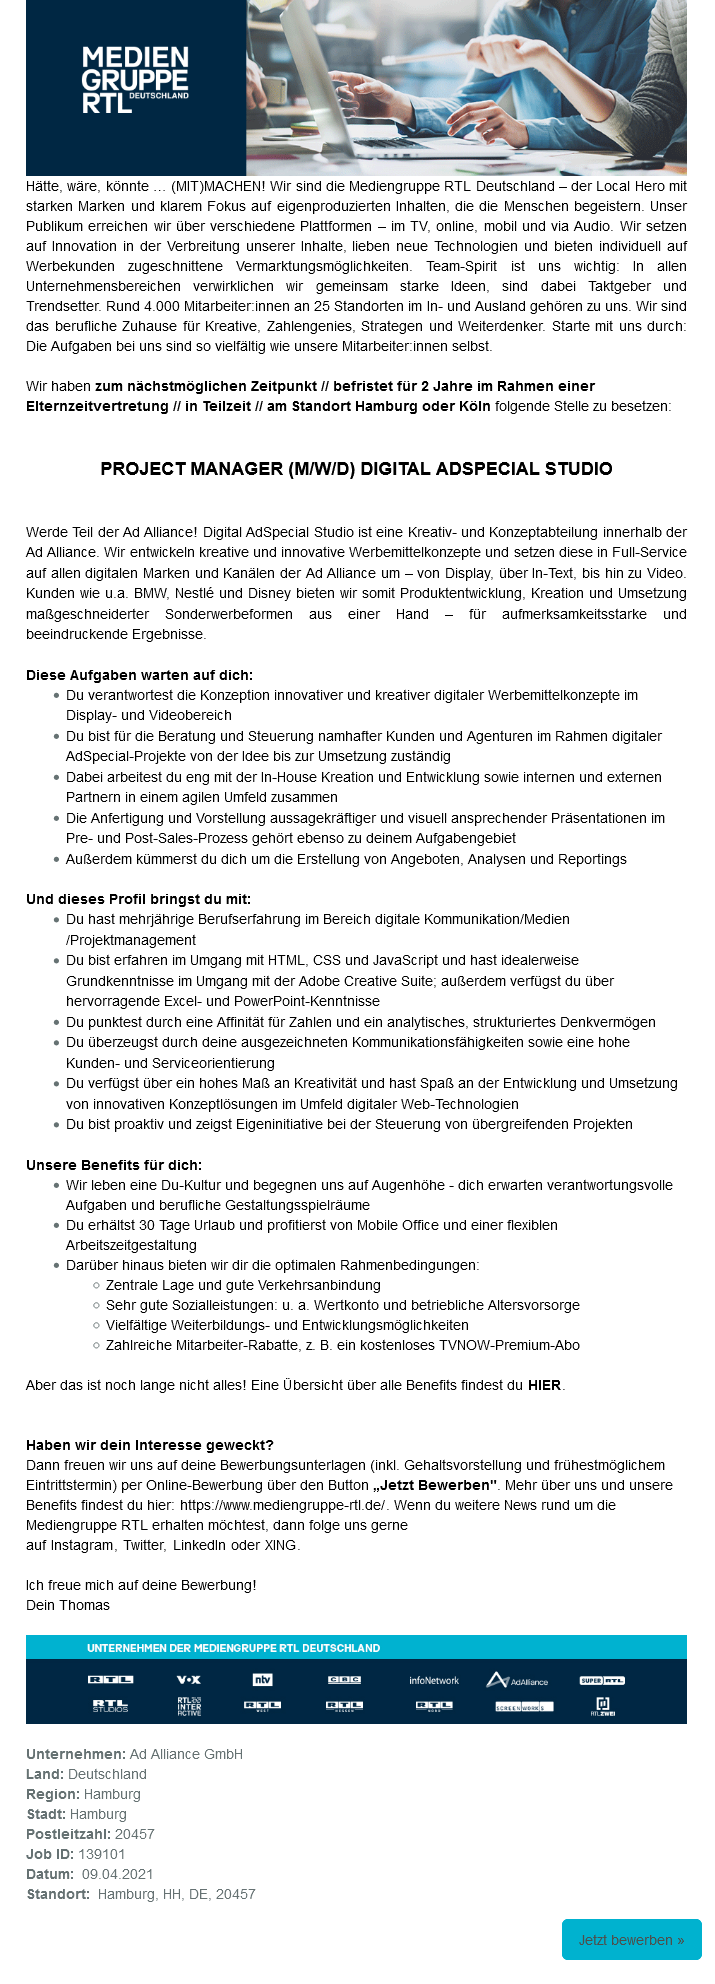 Project Manager (m/w/d) Digital AdSpecial Studio befristet in Teilzeit (Ad Alliance)